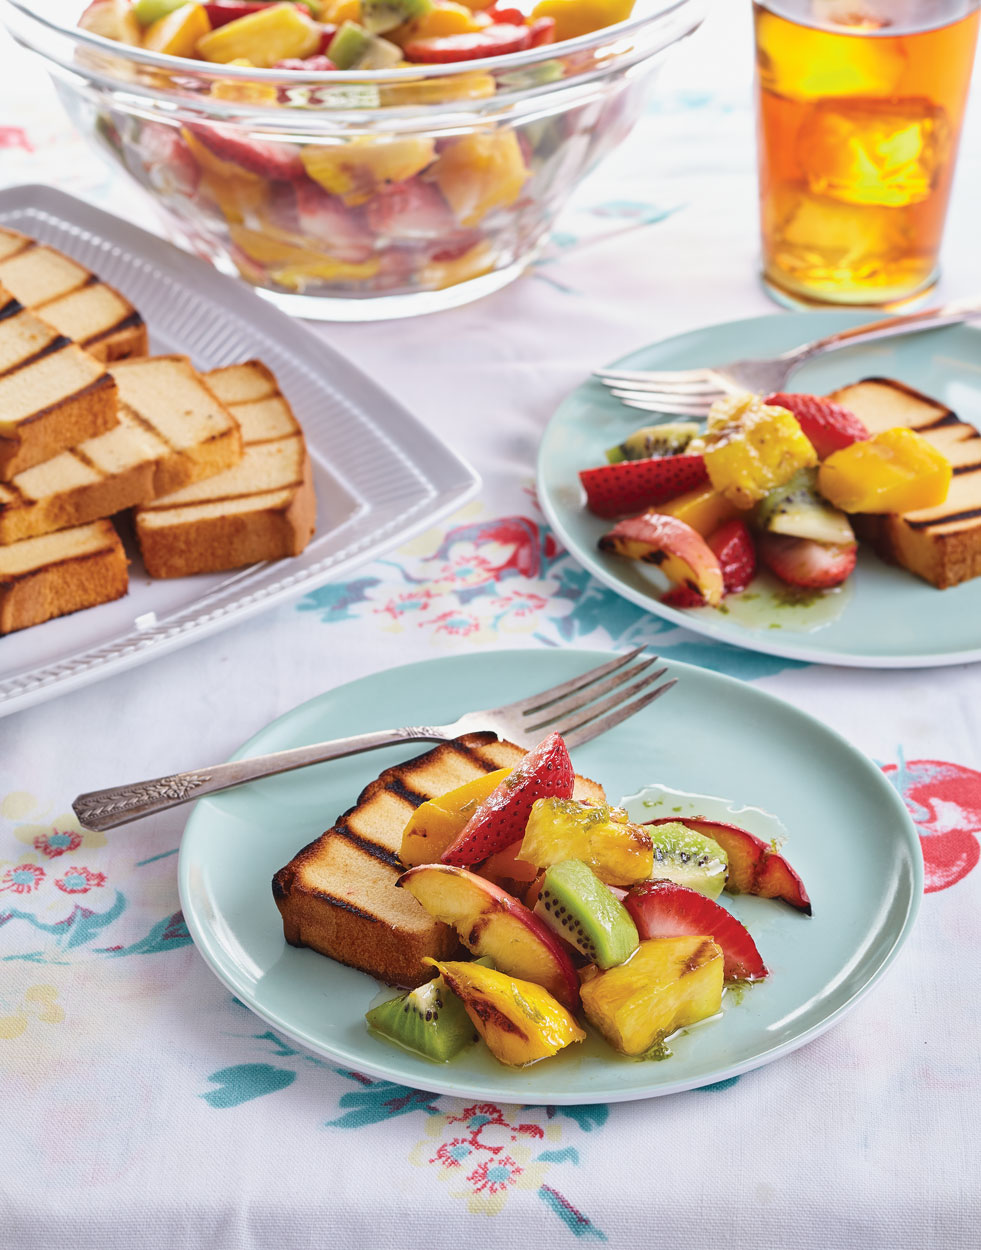 Grilled Fruit Salad With Grilled Pound Cake Recipe